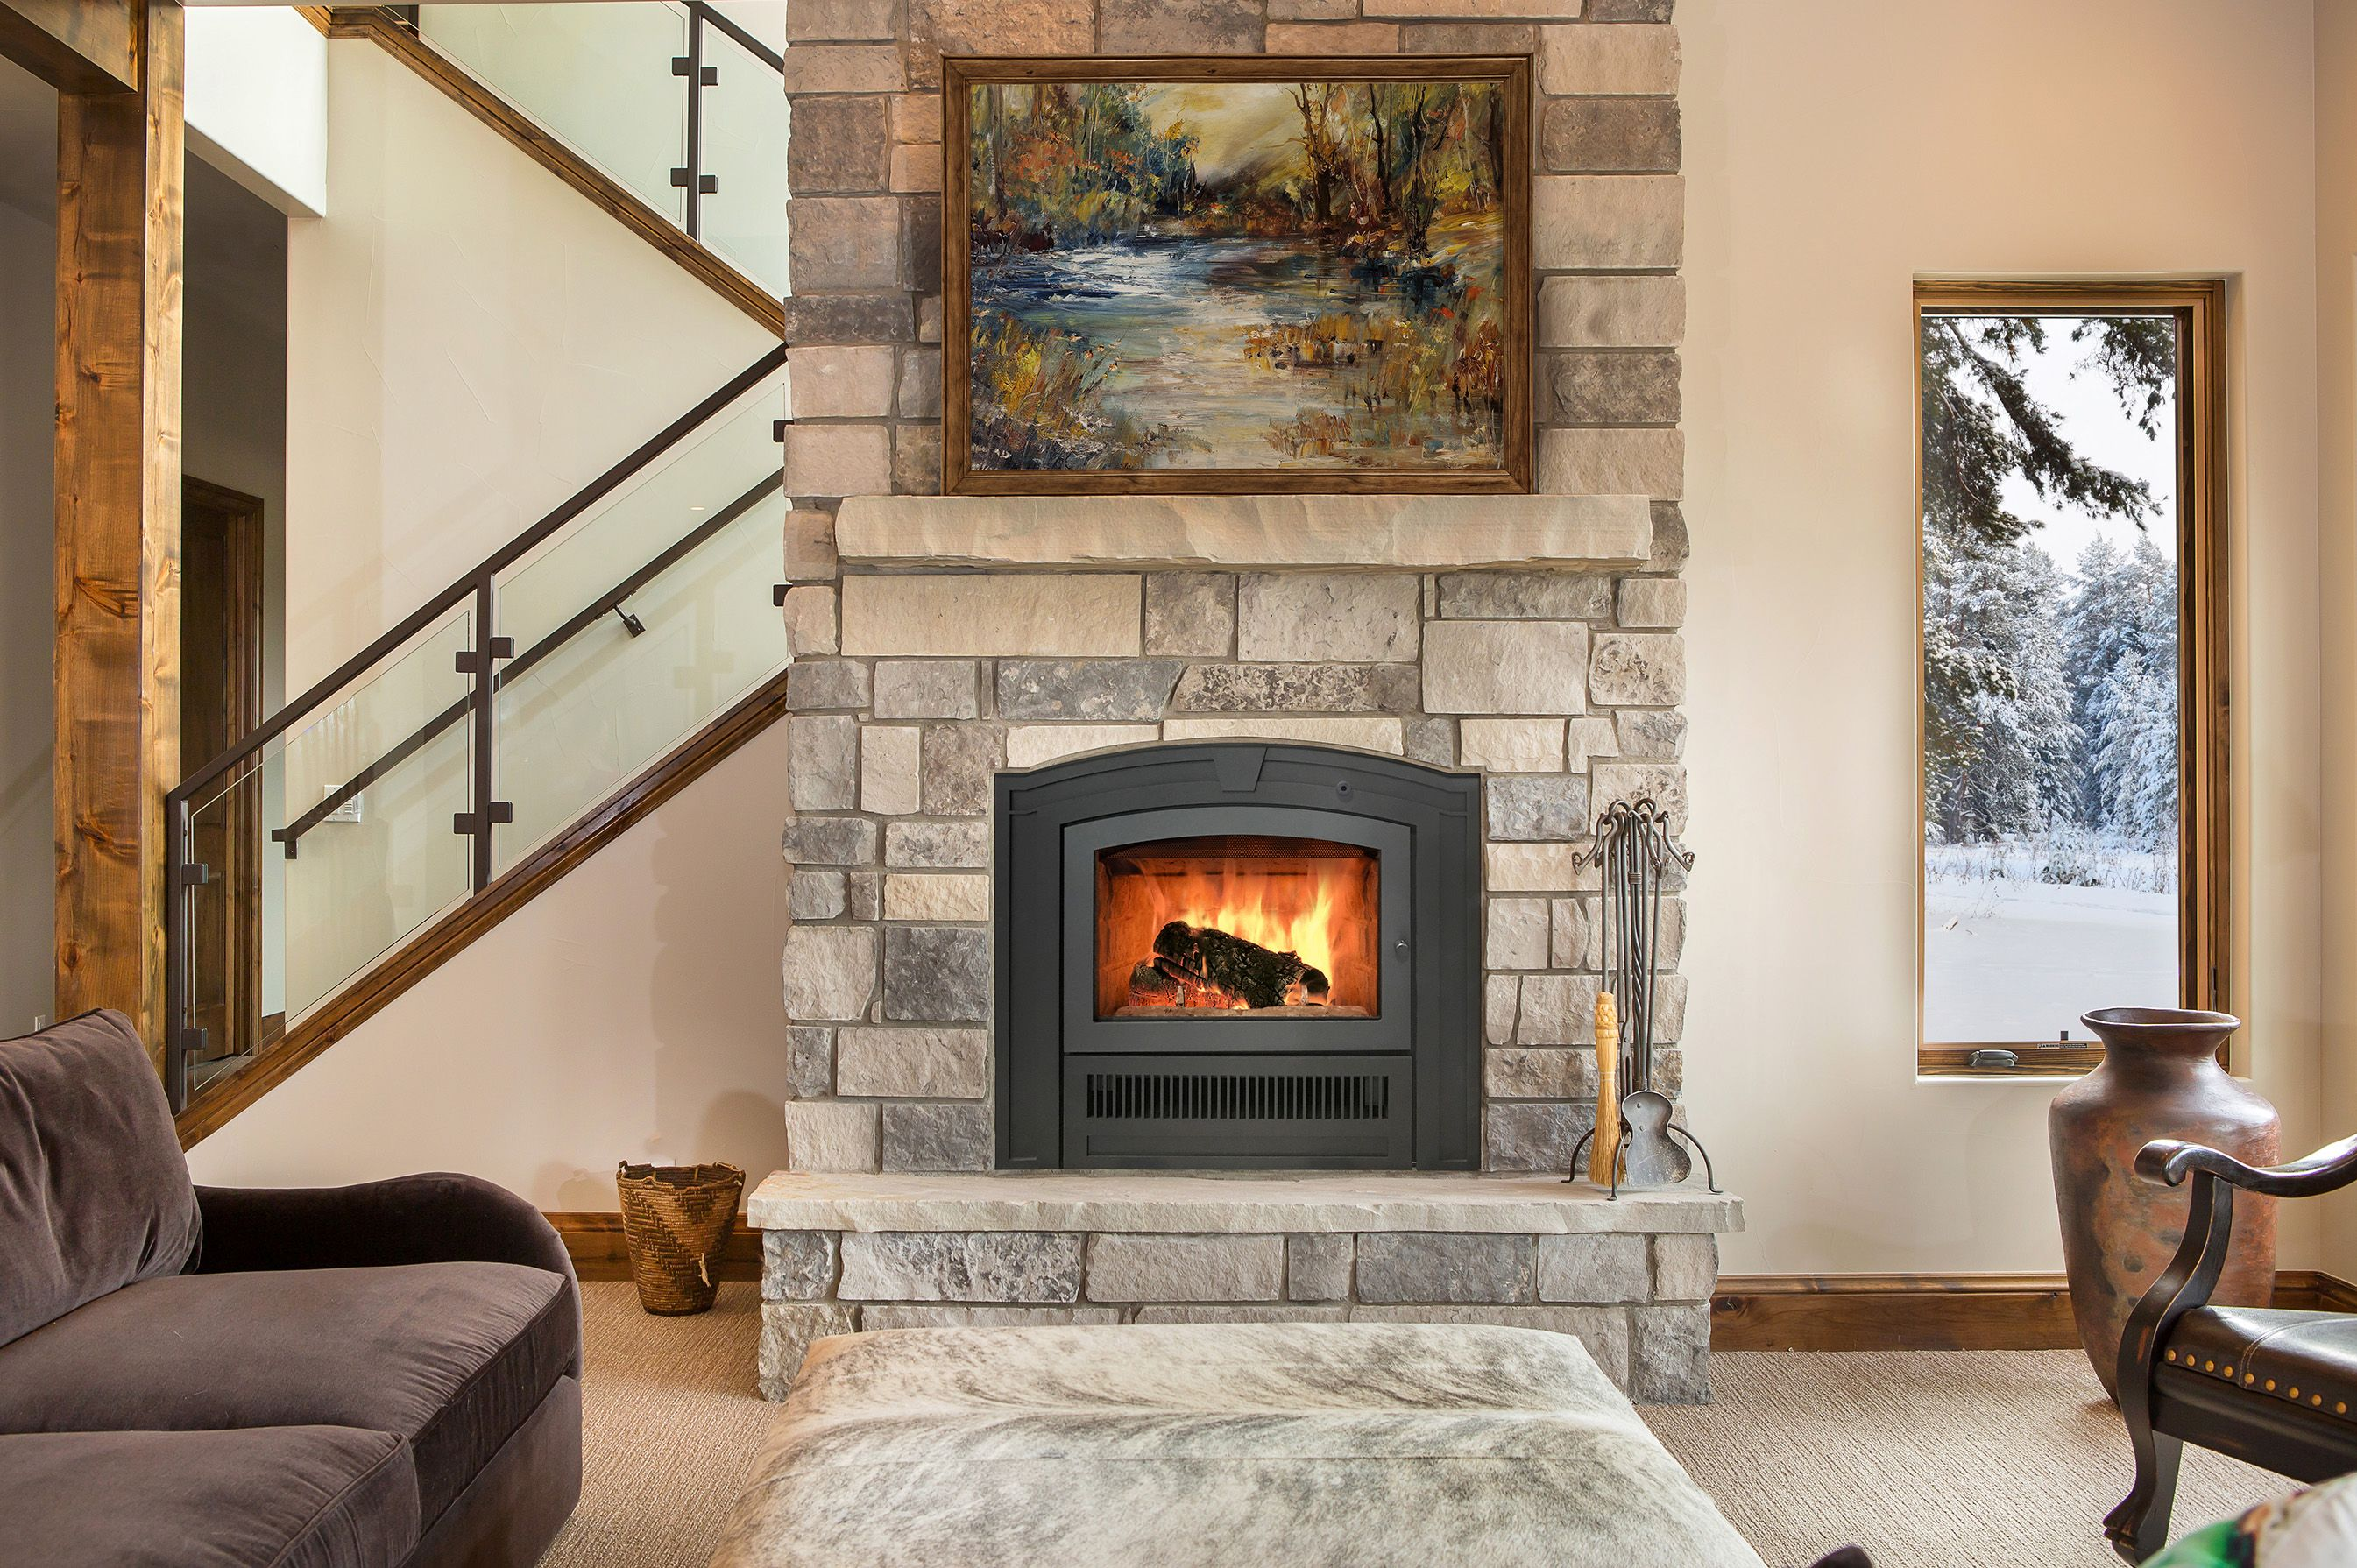 The Beautiful Rsf Opel Keystone One Fireplace With Two Facing